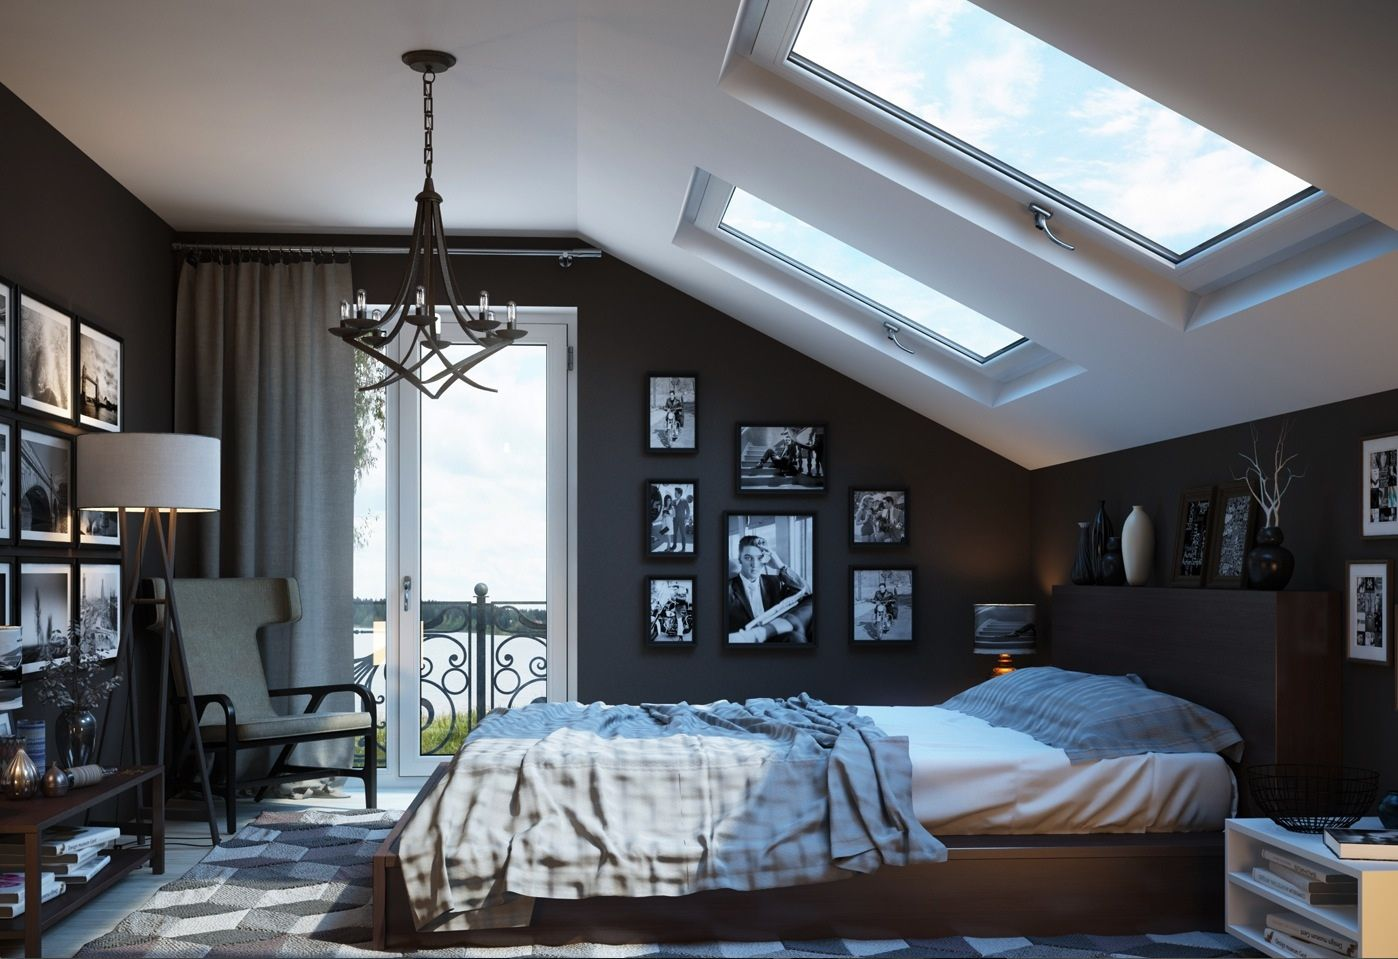 Dazzling Loft Bedroom Design Ispiration with White Ceiling plus Double  Fixed Skylight also Grey Wall Paint Color along with Wooden Platform Bed  and ...